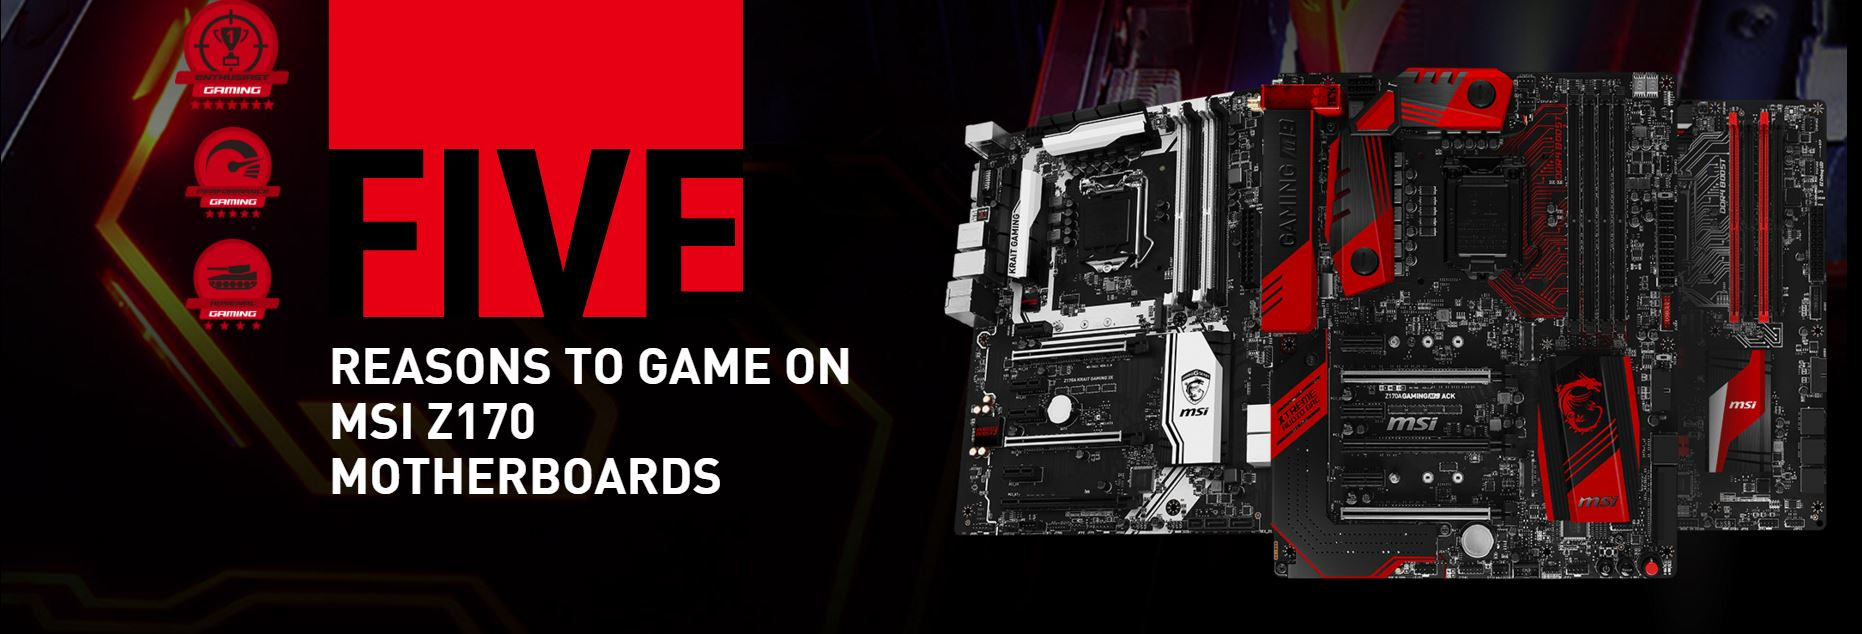 Five Reasons to Game on MSI Z170 Motherboards